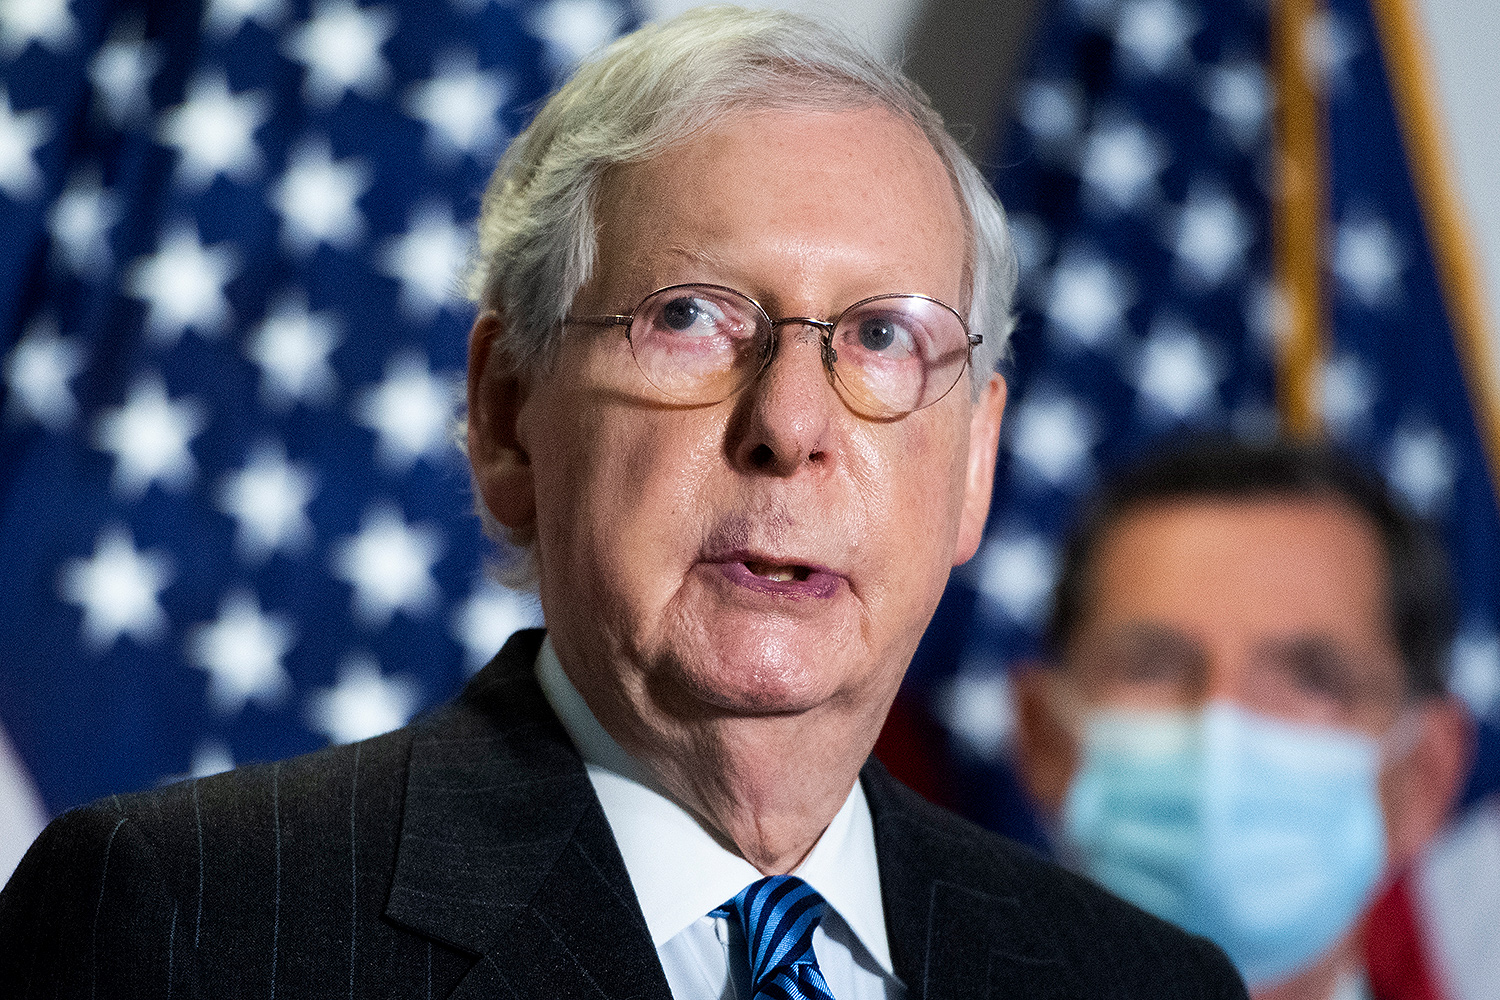 mitch mcconnell hands - photo #13